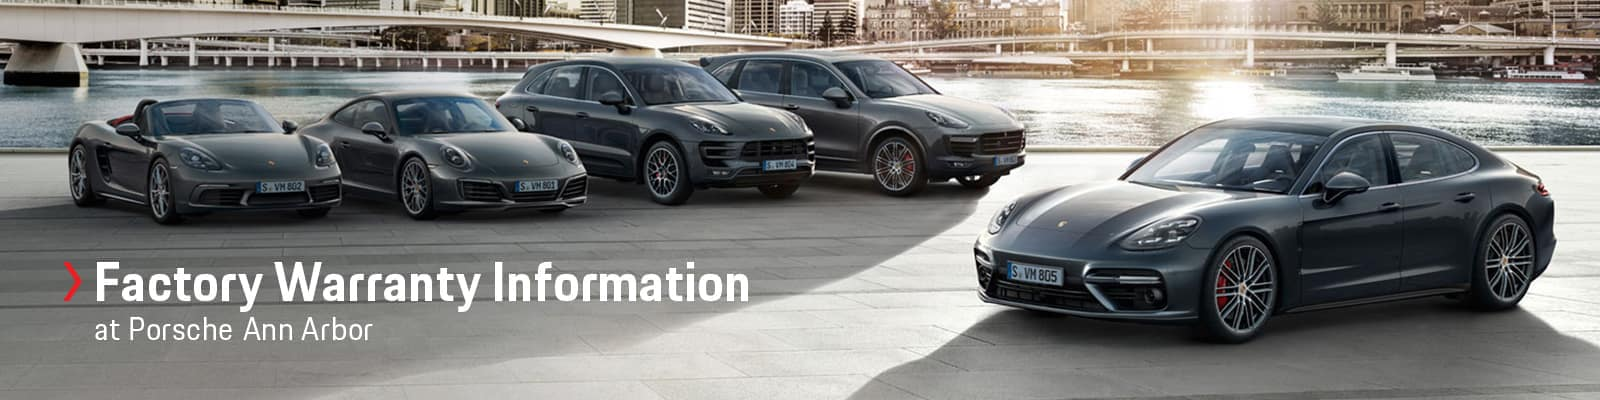 Porsche Factory Warranty Information